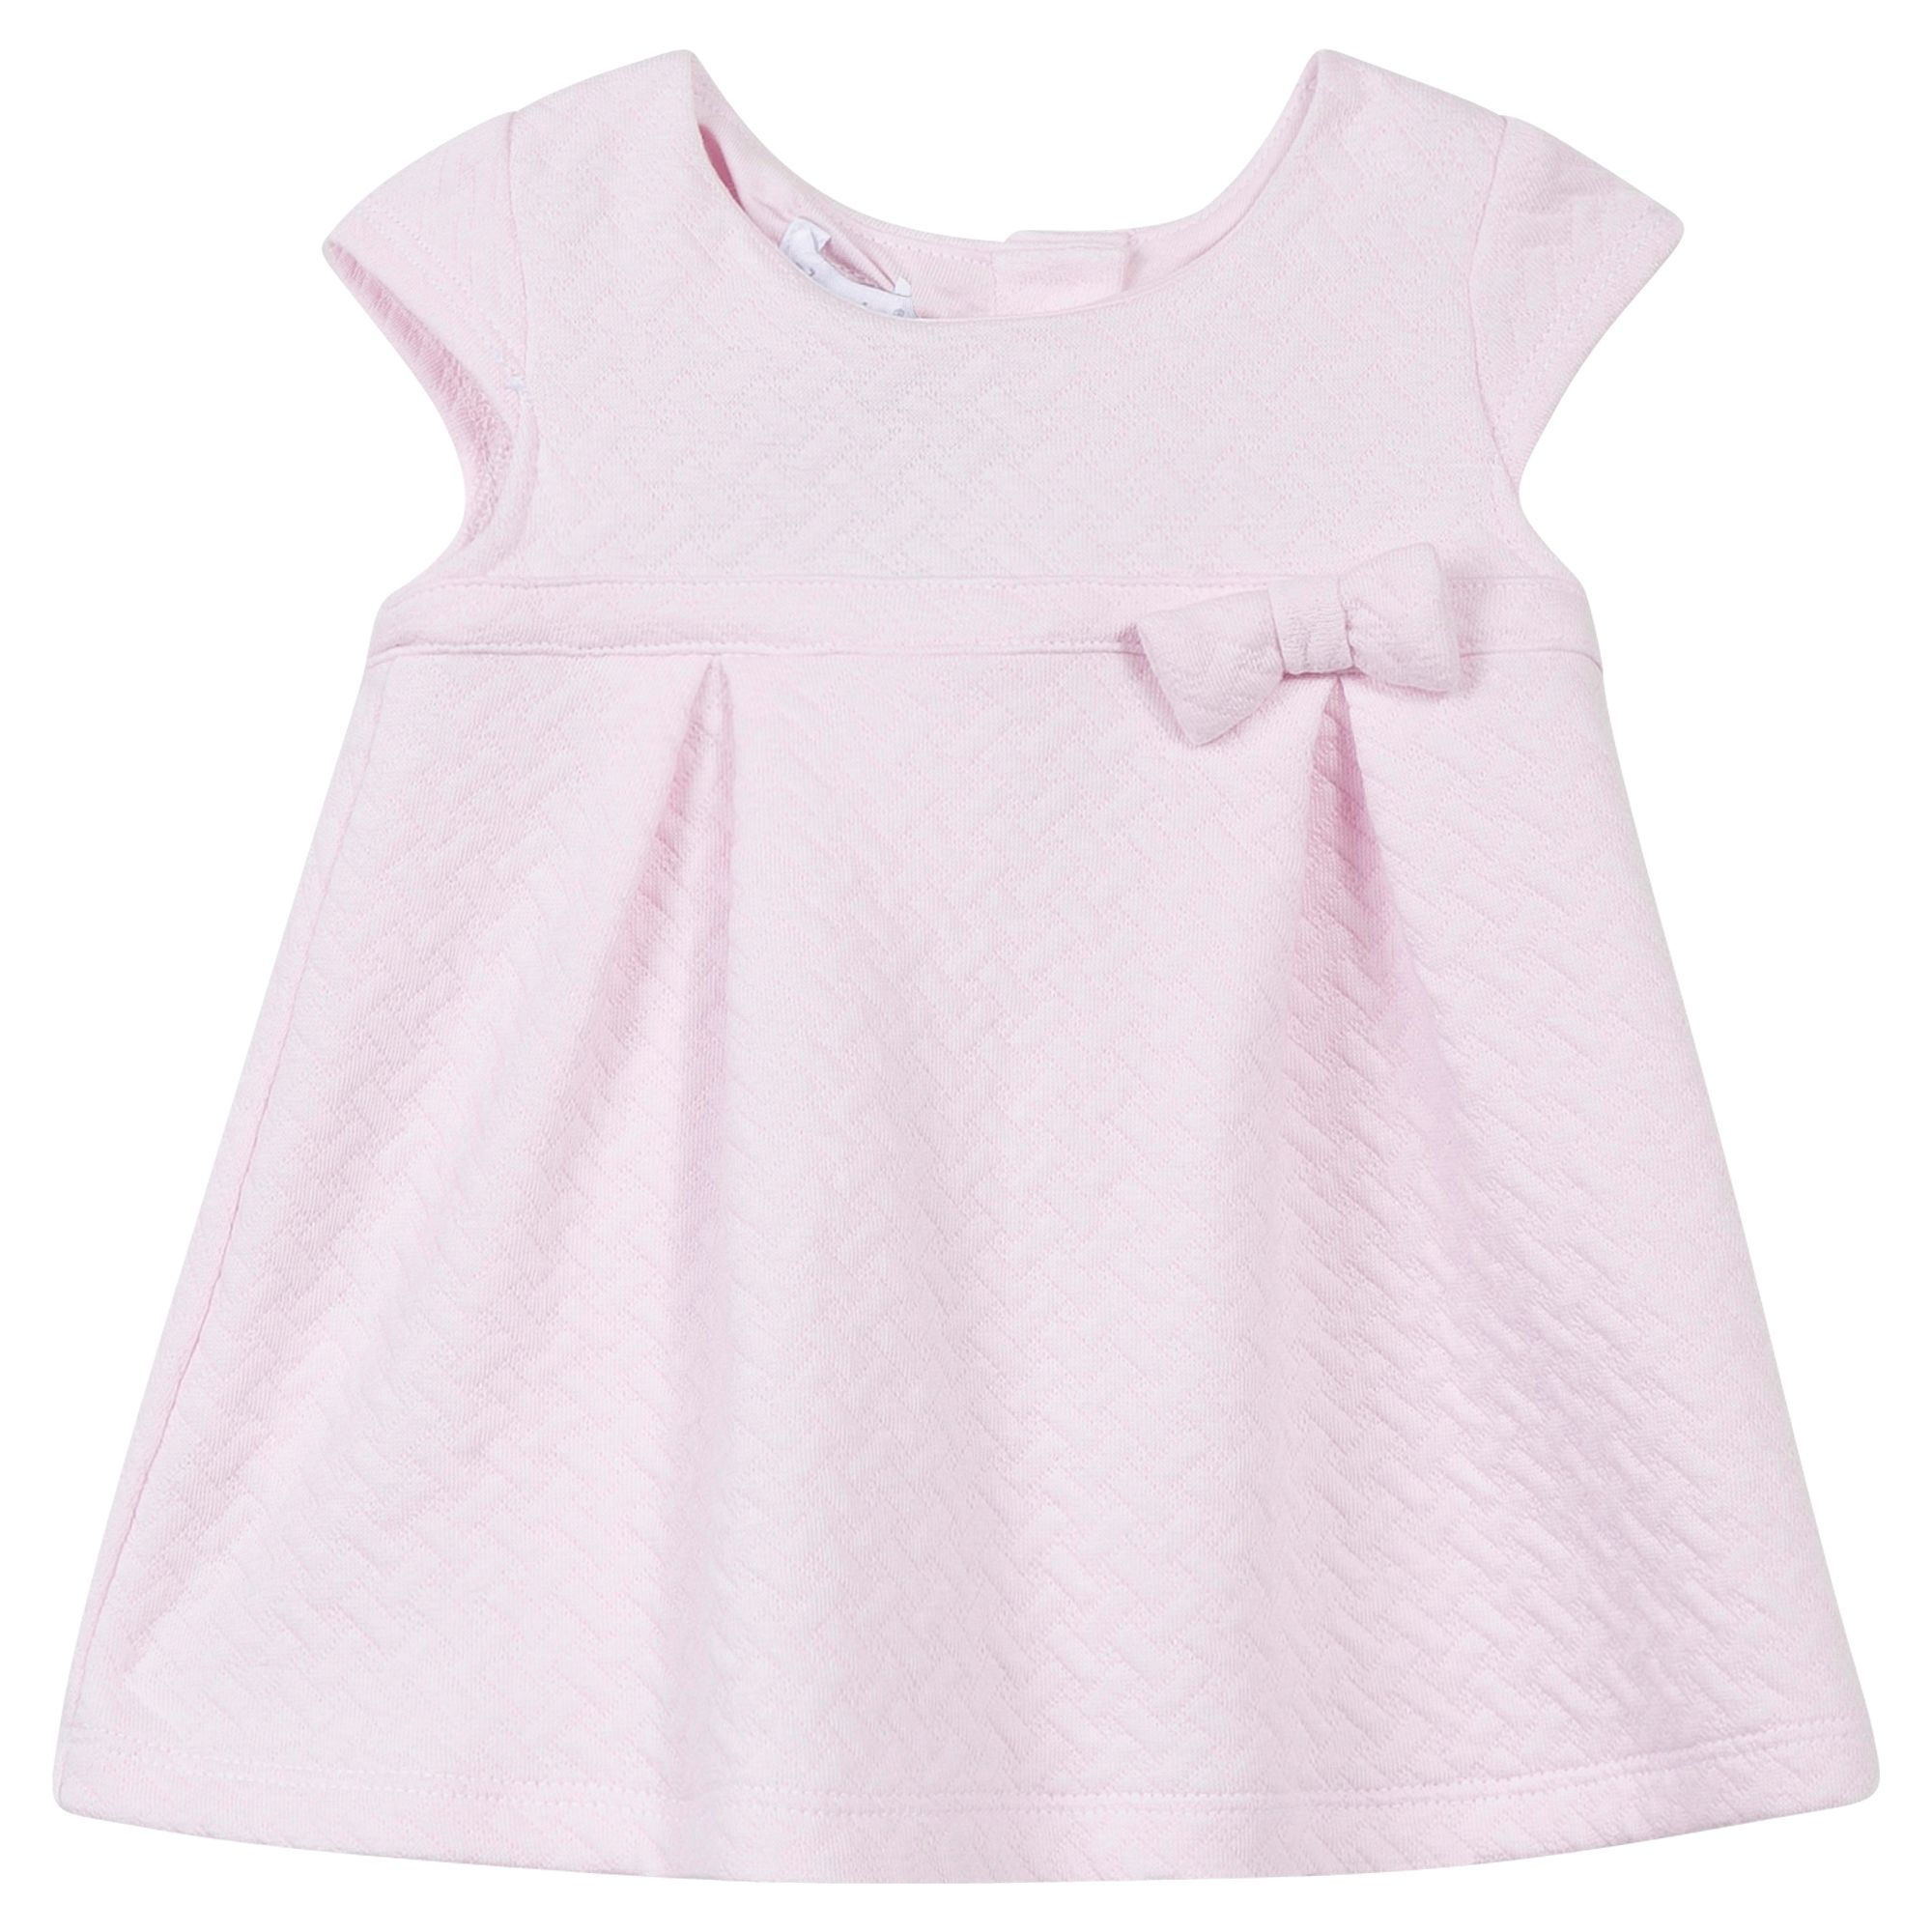 Absorba Absorba Baby Girls Cotton Bow Dress, Pink